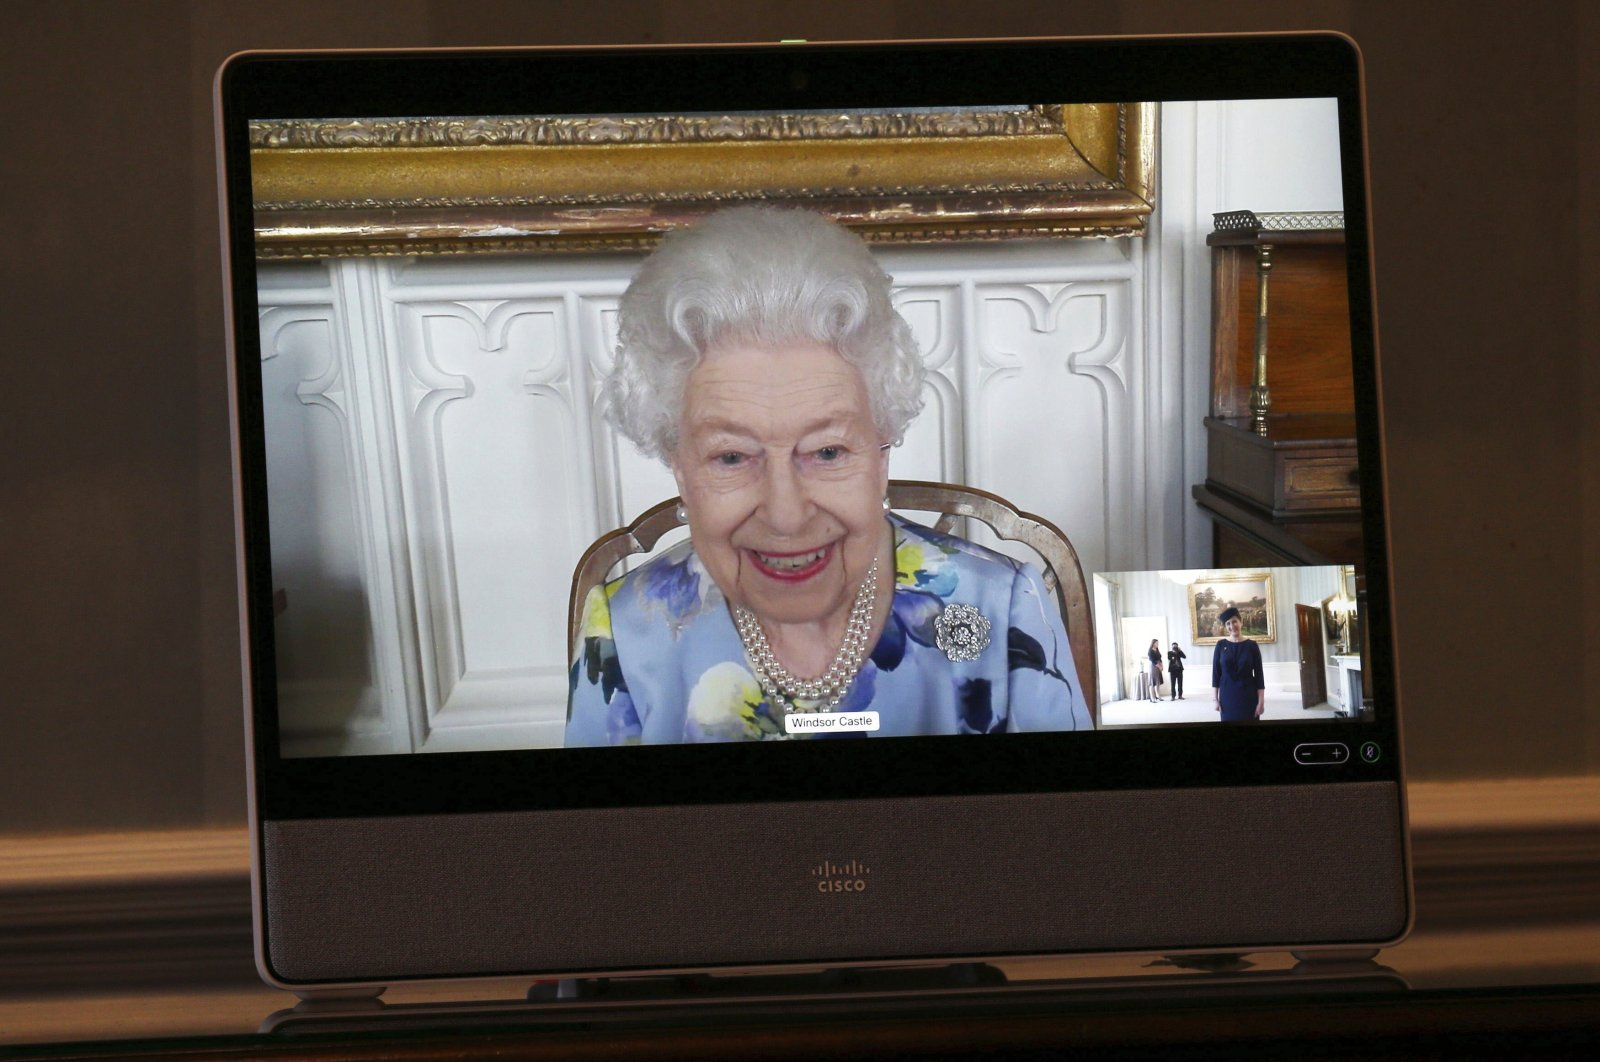 Britain's Queen Elizabeth II appears on a screen by videolink from Windsor Castle, during a virtual audience to receive Her Excellency Ivita Burmistre, the Ambassador of Latvia, at Buckingham Palace, London, U.K., April 27, 2021. (AP Photo)